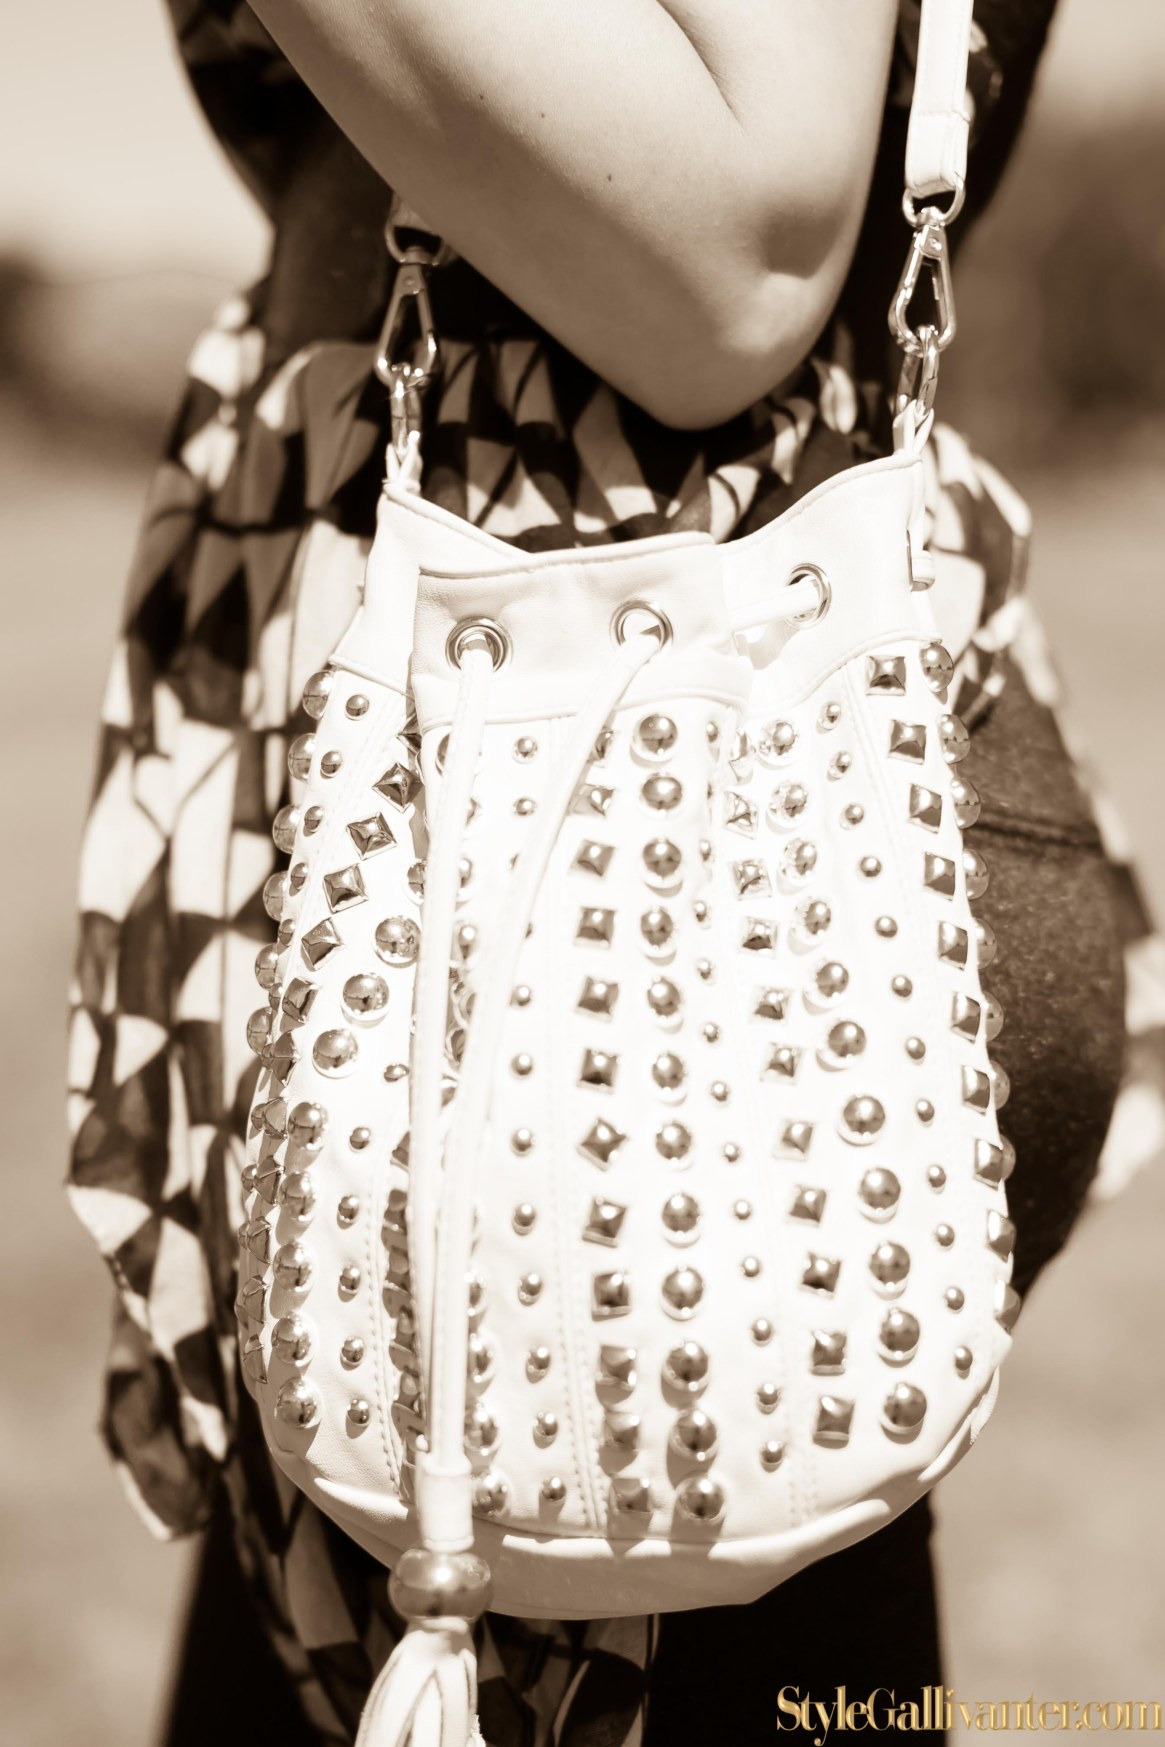 best-new-bloggers-2014_sepia-fashion-editorials_monochrome-sepia_how-to-wear-a-scarf_best-new-bloggers-melbourne-australia-2014_top-african-hair-bloggers_best-hair-bloggers-10